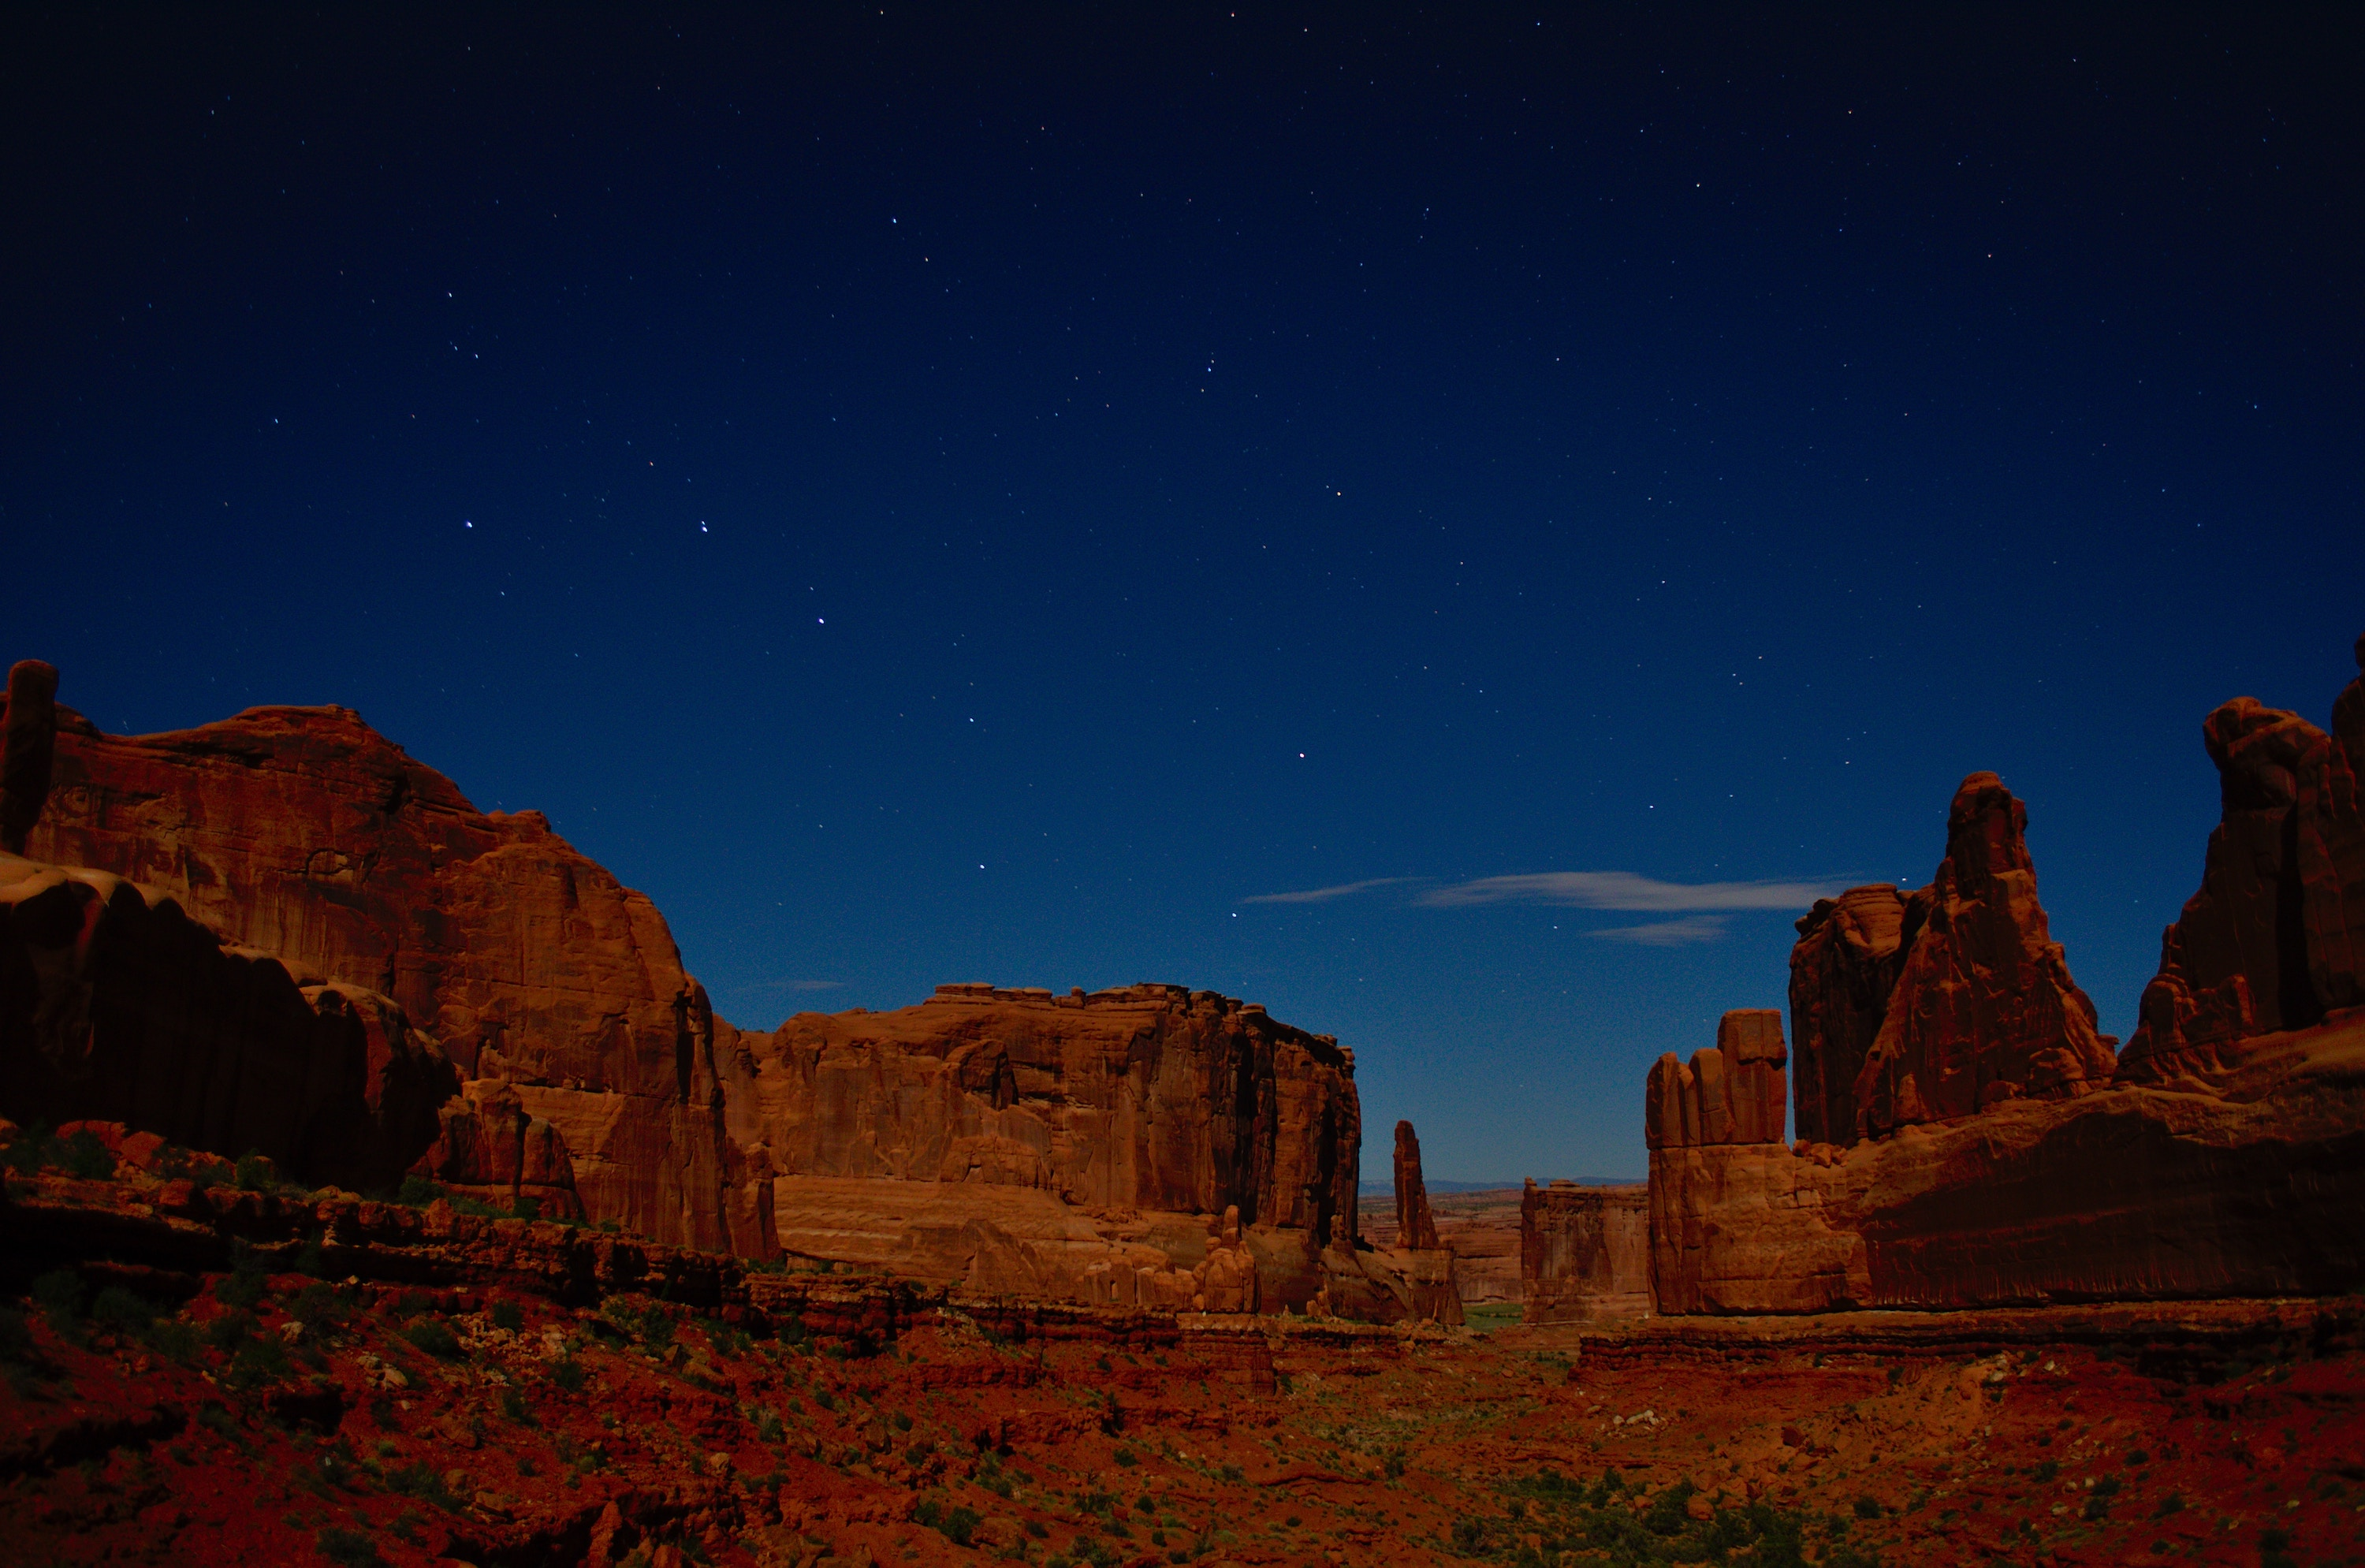 Big Dipper over Arches National Park